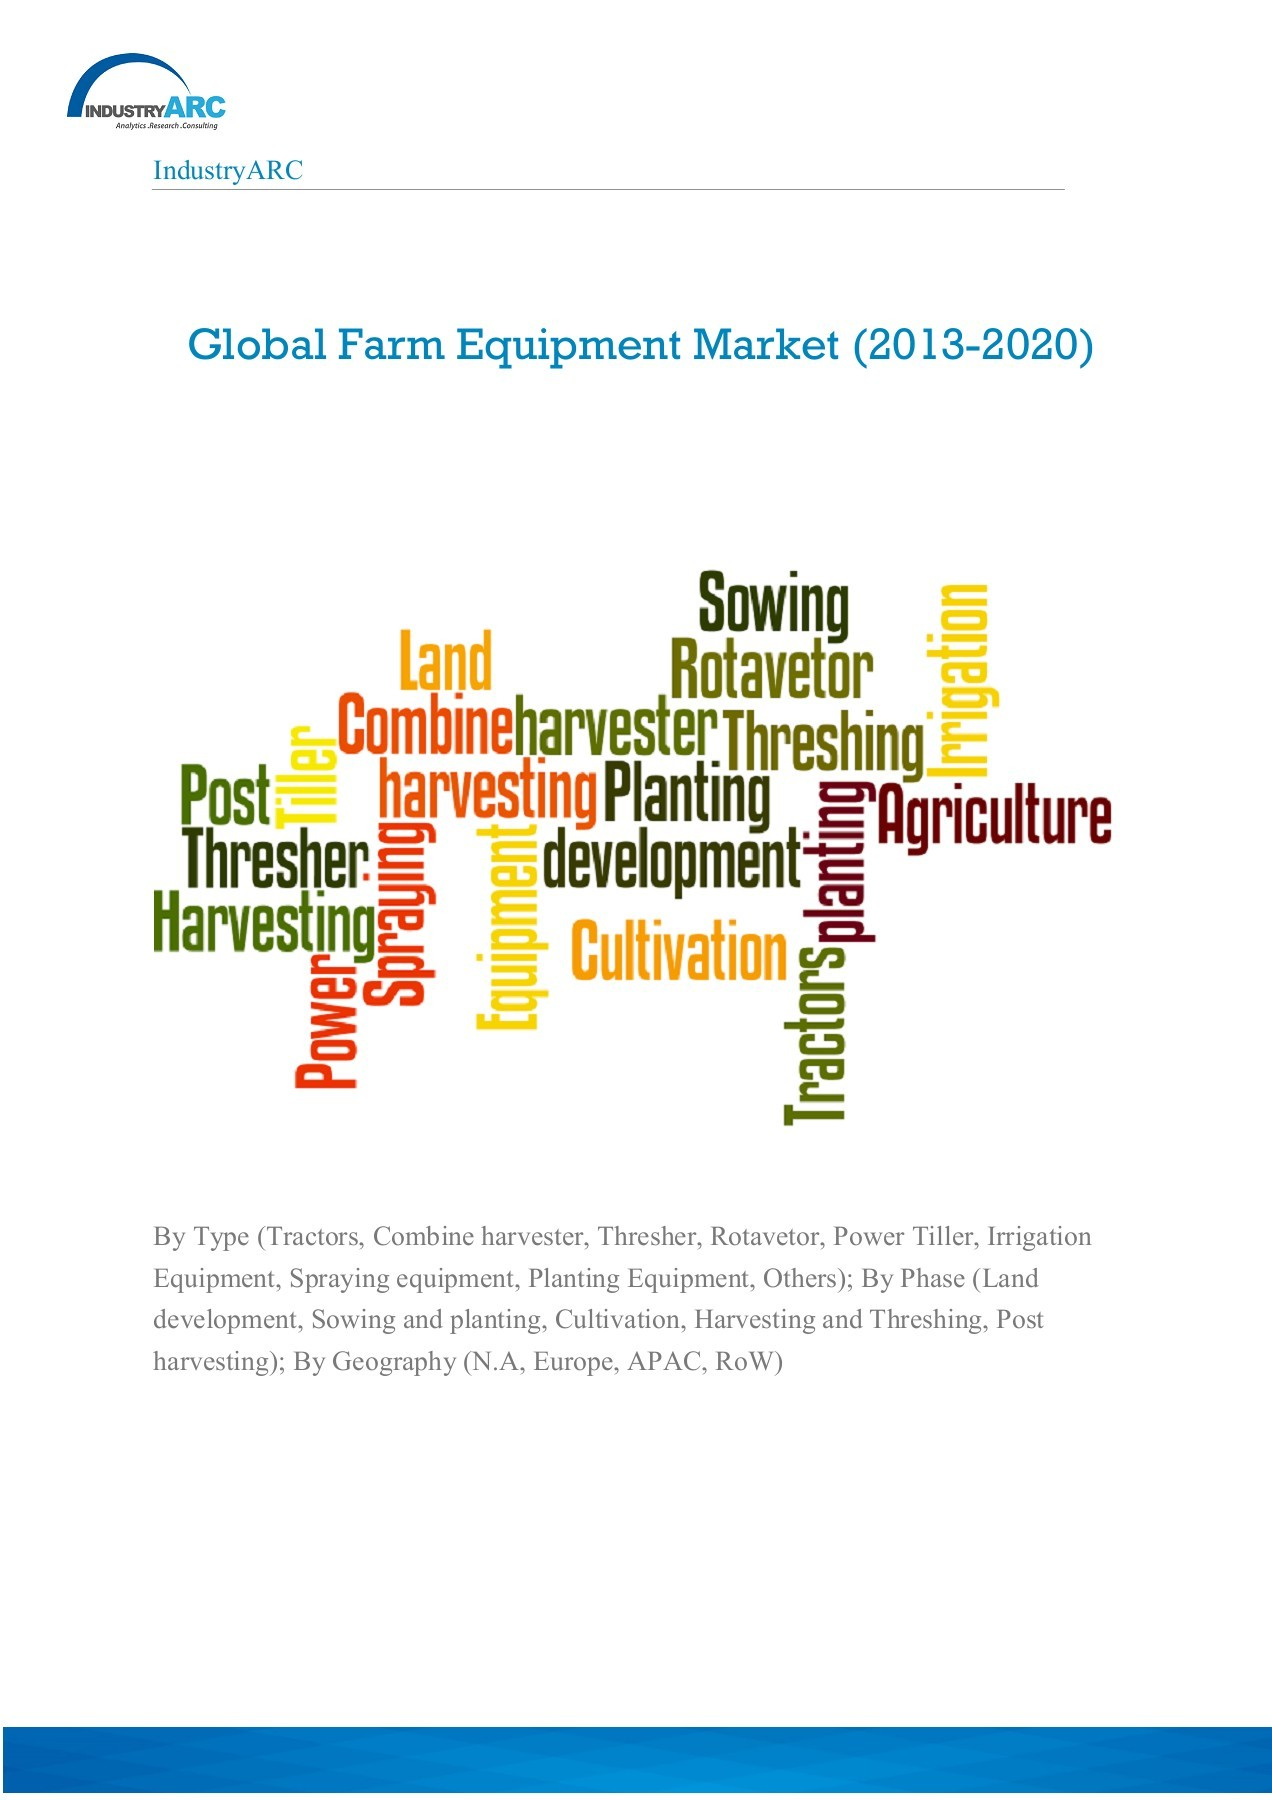 Global Farm Equipment Market (2014 – 2020): By Type (Tractors, Combine  harvester, Thresher, Rotavetor, Power Tiller, Irrigation Equipment,  Spraying equipment, Planting Equipment, Others); By Phase (Land  development, Sowing and planting, Cultivation ...